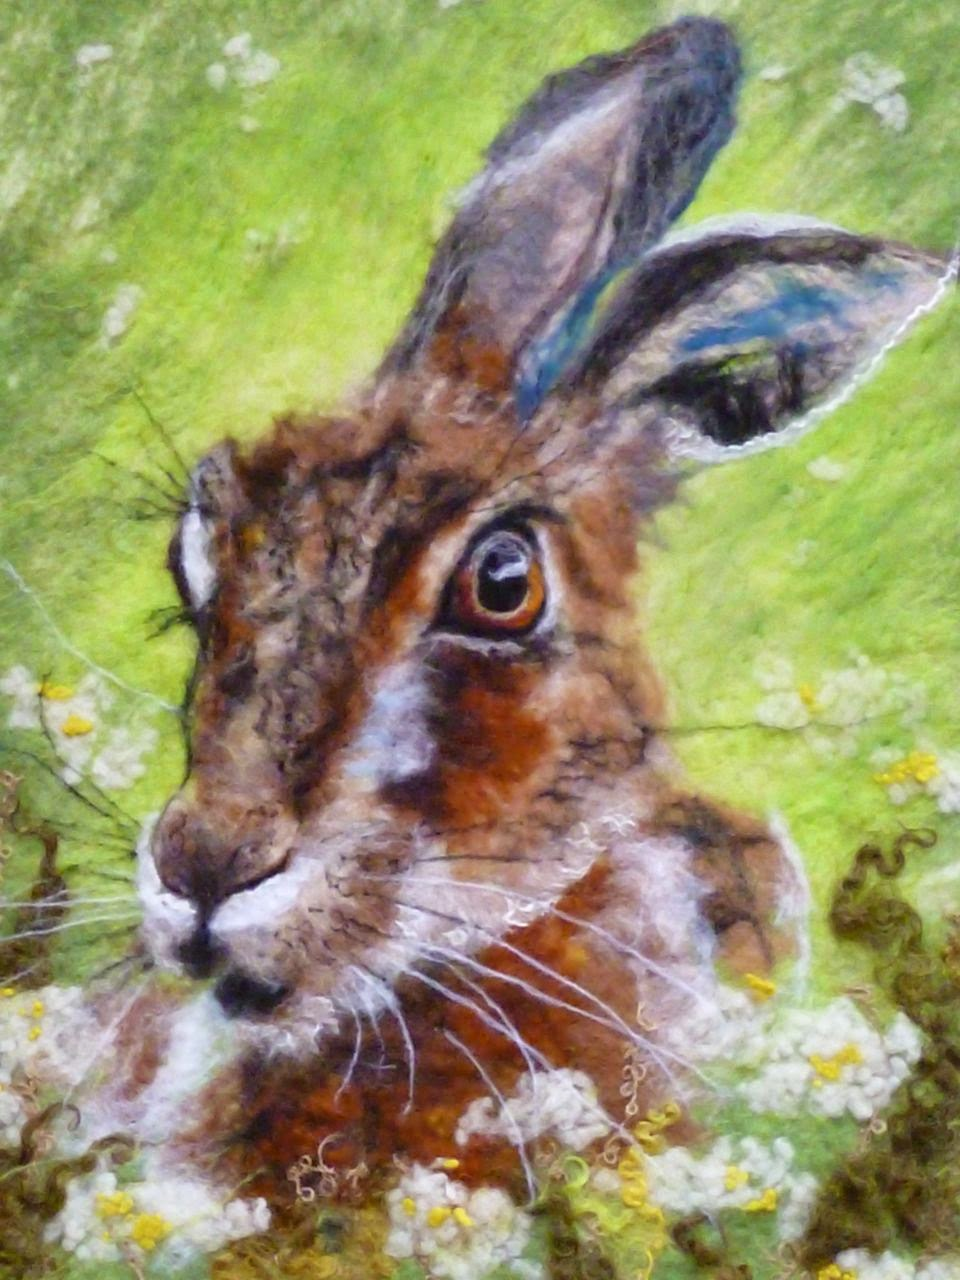 Wily Old Hare